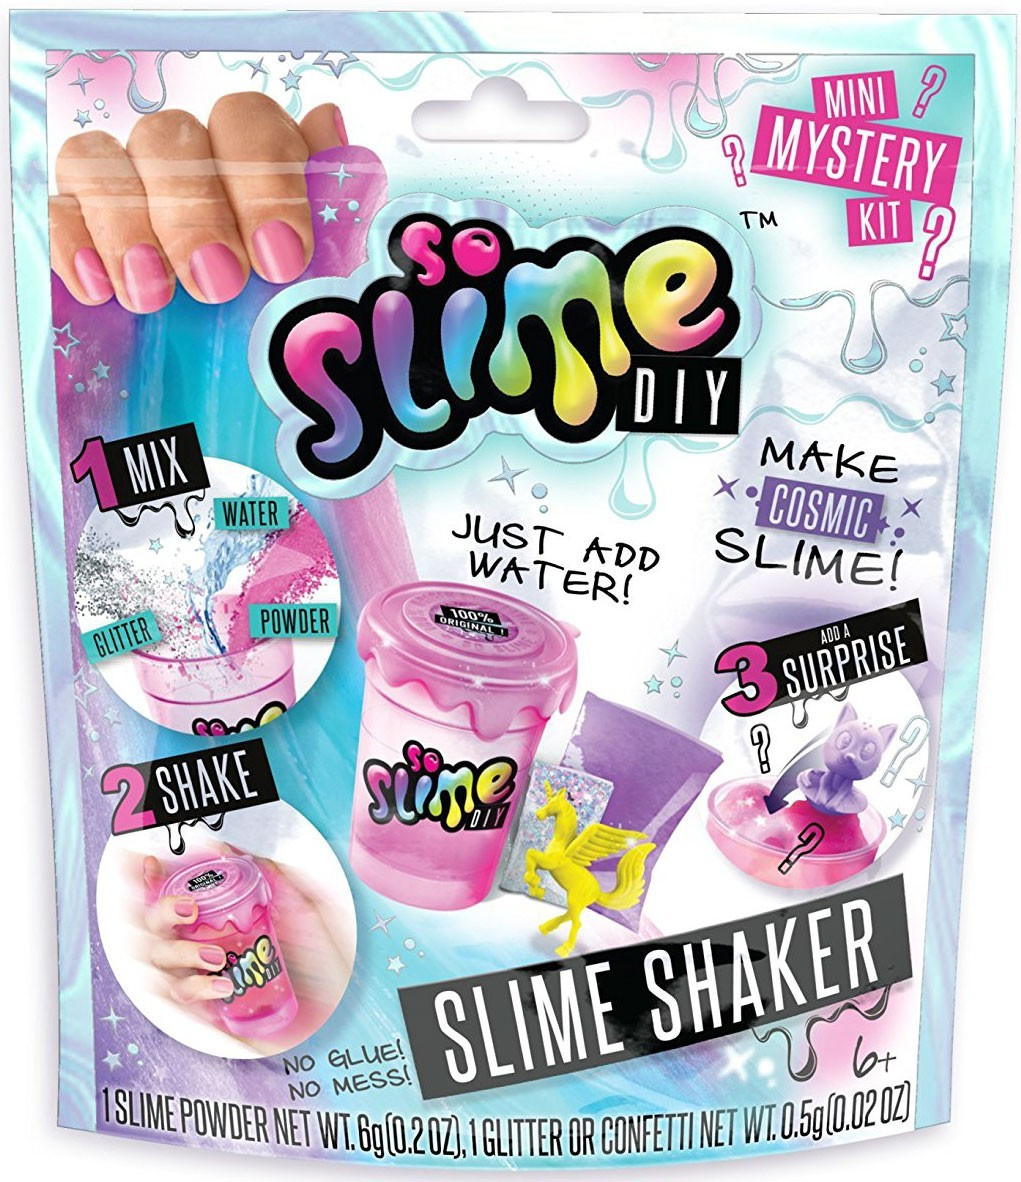 Best ideas about DIY Slime Kit . Save or Pin So Slime DIY Slime Shaker Mini Mystery Kit Pack Canal Toys Now.